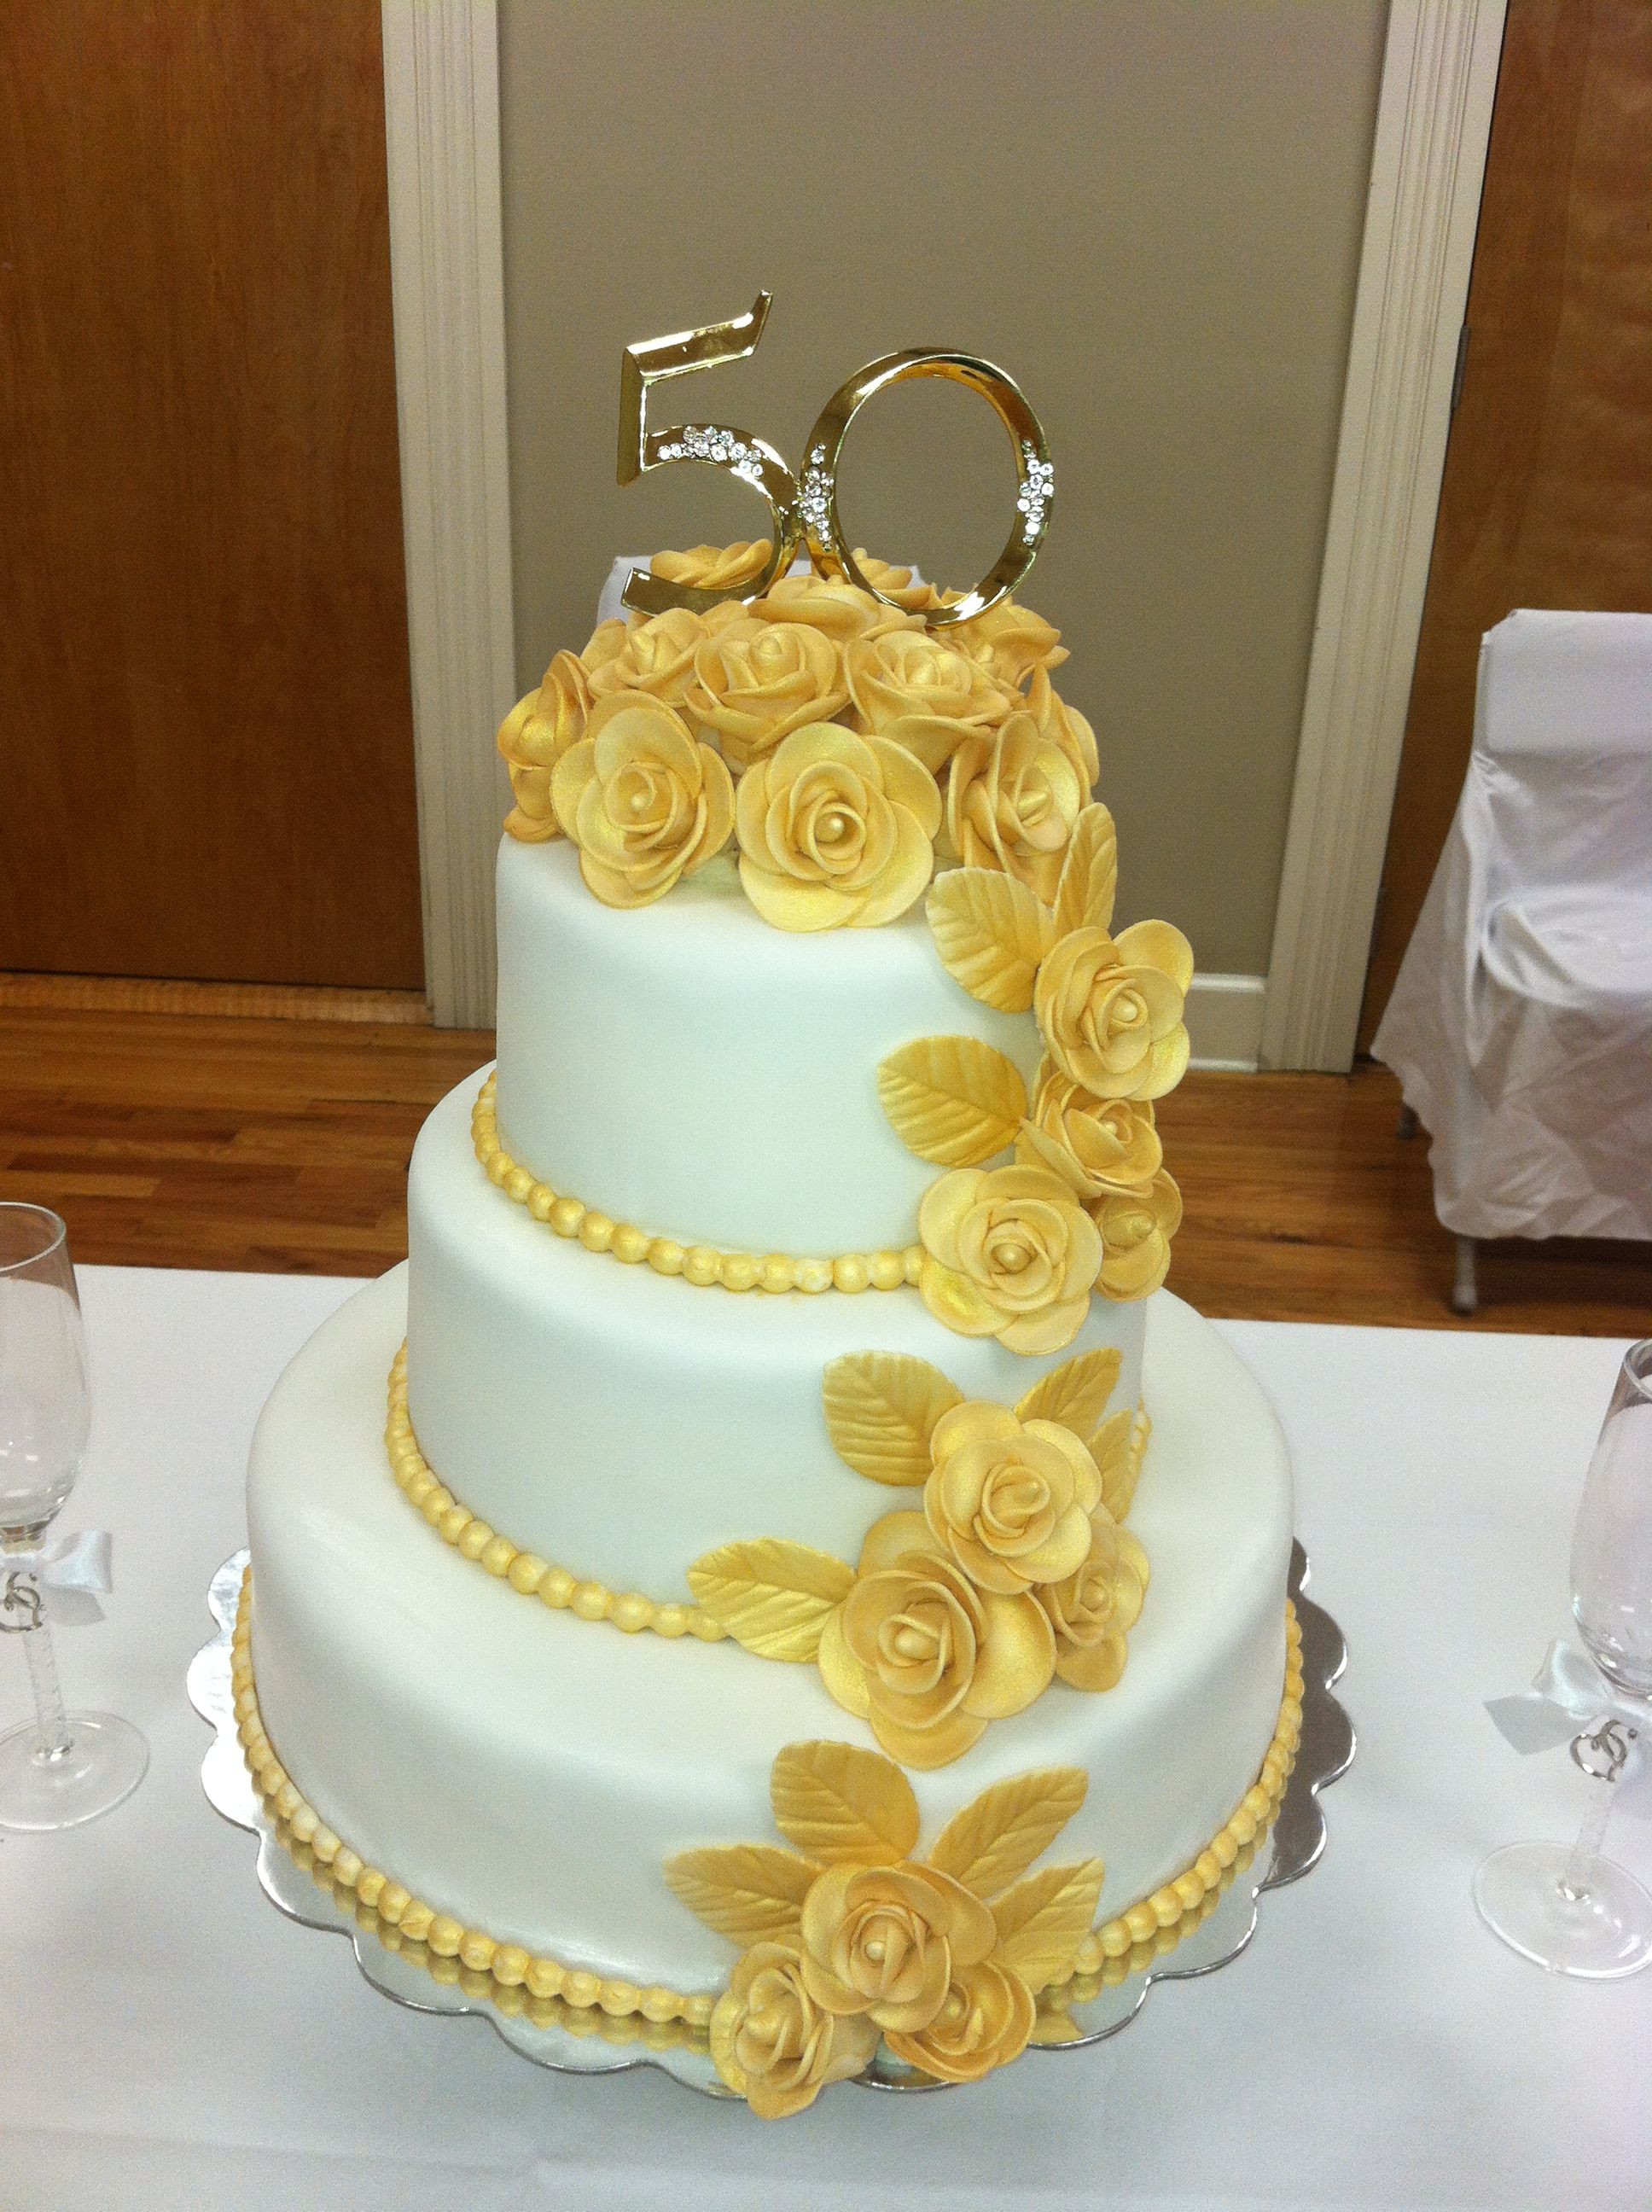 50Th Wedding Cakes  50th Wedding Anniversary Cake The roses are made of gum